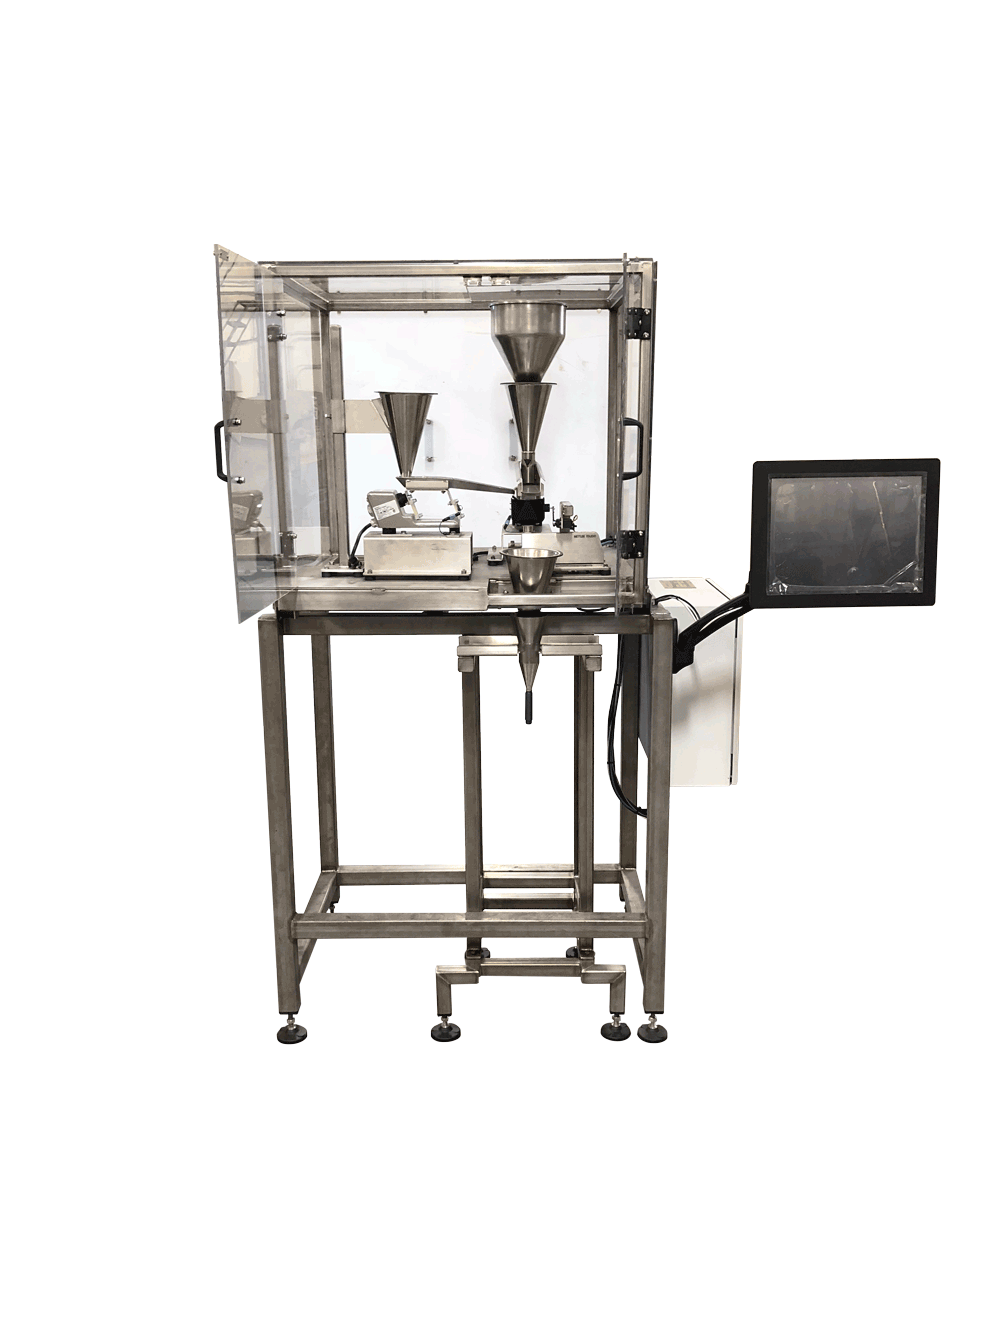 analytical scale,free weigh,scales weights,scale weigh,supersaturation,analytical balance,measurement of density,density measurements,calibrated scales,check weighers,dosing unit,diamond scales,volumetric powder dispensing,batching systems,ultra precision scale, ultra precision,dosing system,calibration of scales,dispensing powder,scale accuracy,industrial scale,calibration scale,precise balance,paint scale,micro pipette,dispensing powder,weigher scale,weights scale,weight testing,industrial weight scale,process analytics,analytical scale,jewellery scale,checkweighing,mettler toledo international inc,mettler scale,mettler balance,weights scale,balances,precision scales,weighing balance,weighing,jewel scale,microbalance,combination systems,count scale,weight controllers,microbalance,precise scale,balance weigh,scales for weighing,weight sensor,calibration balance,weighing scale heavy duty,analytical balance accuracy,microgram scales,balances lab,weight calibration,weighing scale gold,analytical balance precision,lab weighing scale,digital scale,gram scale,milligram scale,gram scale,weighing balance,digital weight scale,digital scale grams,laboratory balance,electronic balance, scientific scale,lab balance,analytical balance price,weight scale, ultra high precision scale, ultra precision scale,high precision scales, precision scales 0.001 g,precision weighing scales,high precision digital scales,precision lab scales,precision scales 0.0001 g, small precision scales, pharmaceutical scales, pharmaceutical high precision scales, precision scales canada, precision scales uk, precision scales mexico, precision scales germany,precision balance scales, gram precision scales, industrial scales calibration, medical equipment scale, medical calibration scales, medical calibration high precision scale,washdown scale, precision and scale,made in usa scales, southern california precision scales companies, southern california high precision scales, southern california precision scale manufacturer,part counting scales,precision balance manufacturer,precision weighing machine, washdown scales,precision weighing scales, best weight scale,counting weigh scale, counting scale, parts counting scale,high accuracy scale, accurate scale, scales,gold scale,high precision scale, small scale,measuring scale, high precision measuring scale,commercial scale, high precision commercial scale, chemistry weight scale,high accuracy weighing scales,fish weight scale, toledo scale,laboratory scale, laboratory high precision scales,laboratory weighing scale, laboratory analytical balance,scientific scales for weighing, high precision balance,weighing scale accuracy and precision,high precision weighing machine,escalas de precision, escalas de alta precisión, escalas de laboratorio, escalas para laboratorio,balanzas de alta precisión,complicated powders weighing scales, weighing scales for complicated powders,micro balance,professional weight scales, smart weight scale, industrial scales canada, industrial scales nz, industrial scales uk, package scales, analytical balance manufacturers,lab weighing machine,counting scales for sale, weighing scale manufacturers,milligram balance scale, gram balance scale, decimal precision scale, reliable weighing scales, reliable industrial weighing scales, hopper scale, industrial weighing equipment, balanzas de precision mexico, balanzas de precision argentina, balanzas de precision colombia,balanzas de precision chile, balanzas de precision, bascula de gramos, bascula para pesar gramos, bascula de alta precision, bascula para pesar miligramos, bascula industrial para pesar gramos, bascula para laboratorio de alta precision,bascula de peso en gramos,bascula de precision miligramos,bascula digital,pesa de gramos,basculas grameras digitales,donde comprar una bascula de gramos,bascula para pesar,basculas grameras,basculas grameras,basculas grameras,bascula profesional,basculas profesionales,bascula digital weight care,bascula weightcare,marcas de basculas,mejores marcas de basculas digitales para negocio,bascula electronica,basculas digitales precios,báscula de laboratorio,báscula para joyeria, bascula empacadora, balanza gramos,precio de basculas electronicas,cuanto cuesta bascula digital,donde venden basculas grameras,aplicacion para pesar oro,instrumentos para pesar sustancias,instrumentos para pesar,bascula para veterinaria,basculas veterinarias,fabrica de basculas,basculas grameras en monterrey,qué es una balanza de precisión,donde puedo comprar una bascula,milimicra,bascula gramera digital guadalajara,basculas digitales para negocio,bascula gramera donde comprar,basculas digitales monterrey,balanza analitica,basculas industriales, donde comprar basculas industriales, comprar bascula,balanza de precision laboratorio,balanza analitica precio,balanza de precision precio